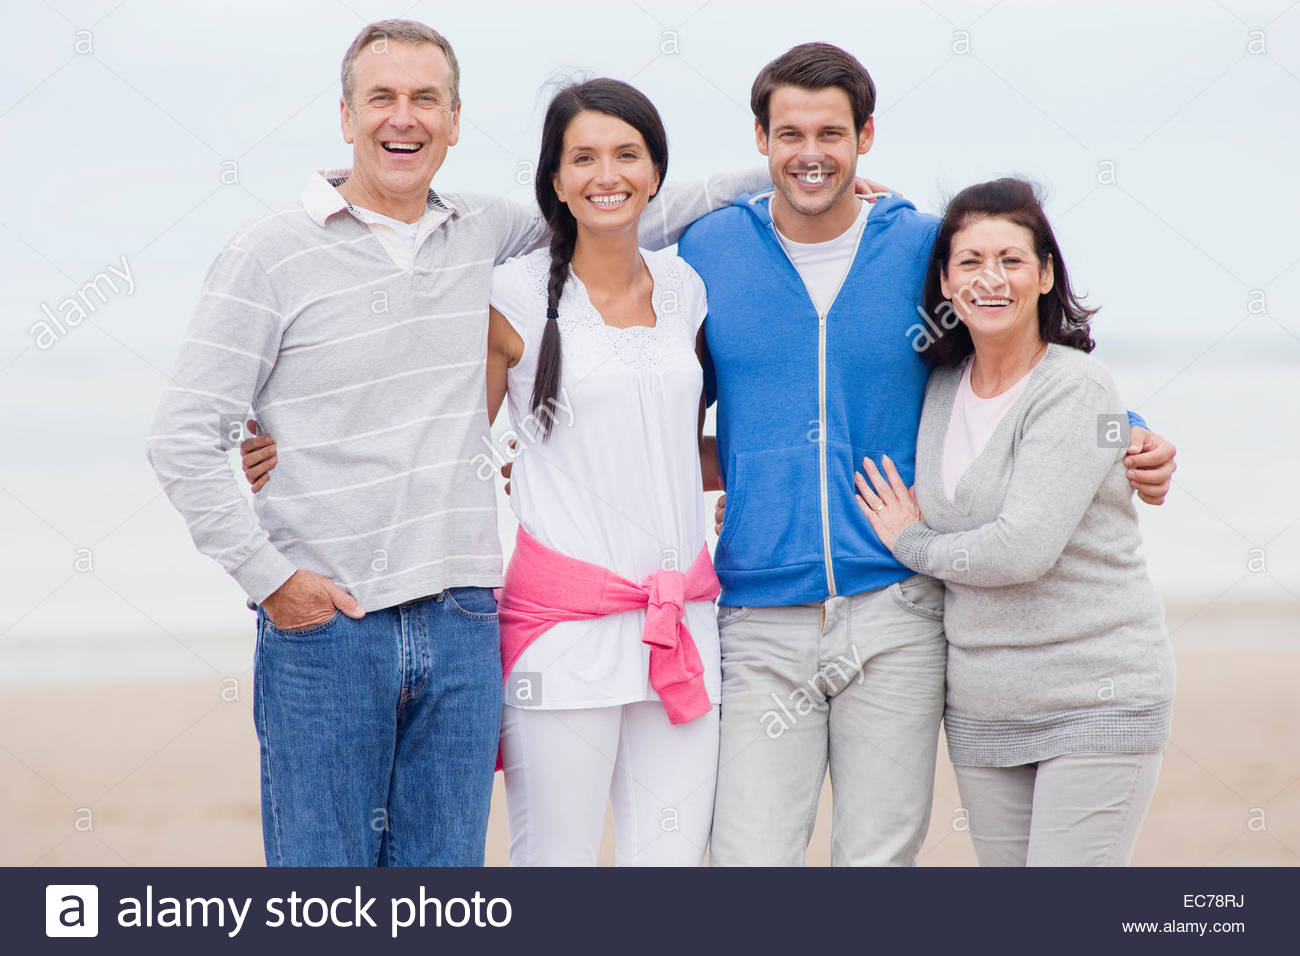 Parents and adult offspring smiling together on beach - Stock Image